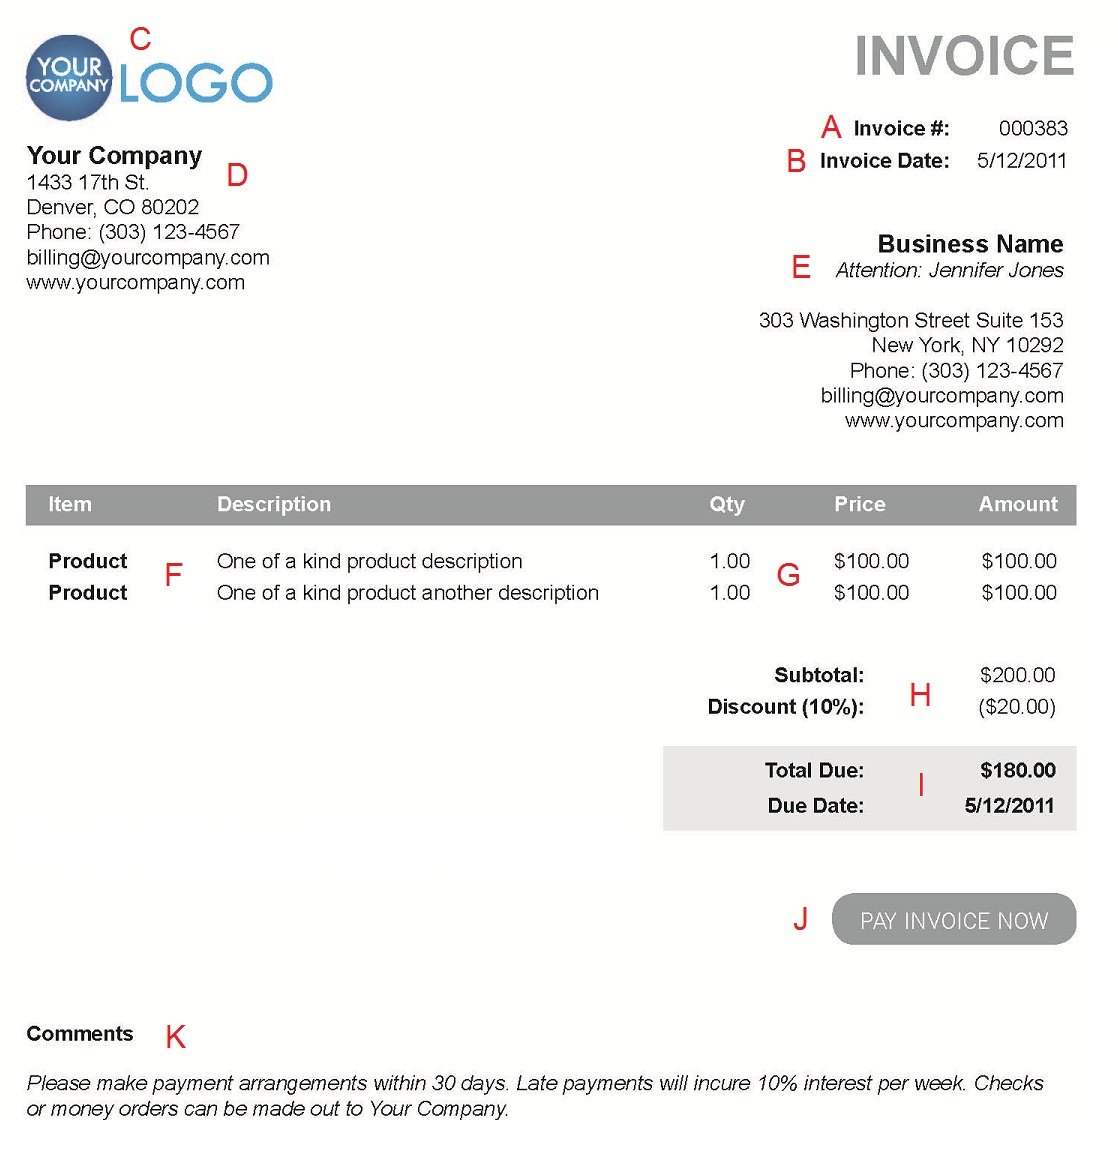 Ebitus  Sweet The  Different Sections Of An Electronic Payment Invoice With Engaging A  With Adorable Cab Receipt Also Enterprise Print Receipt In Addition Rental Receipts And Receipt Book Template As Well As Receiptent Additionally Petsmart Return Policy Without Receipt From Paysimplecom With Ebitus  Engaging The  Different Sections Of An Electronic Payment Invoice With Adorable A  And Sweet Cab Receipt Also Enterprise Print Receipt In Addition Rental Receipts From Paysimplecom